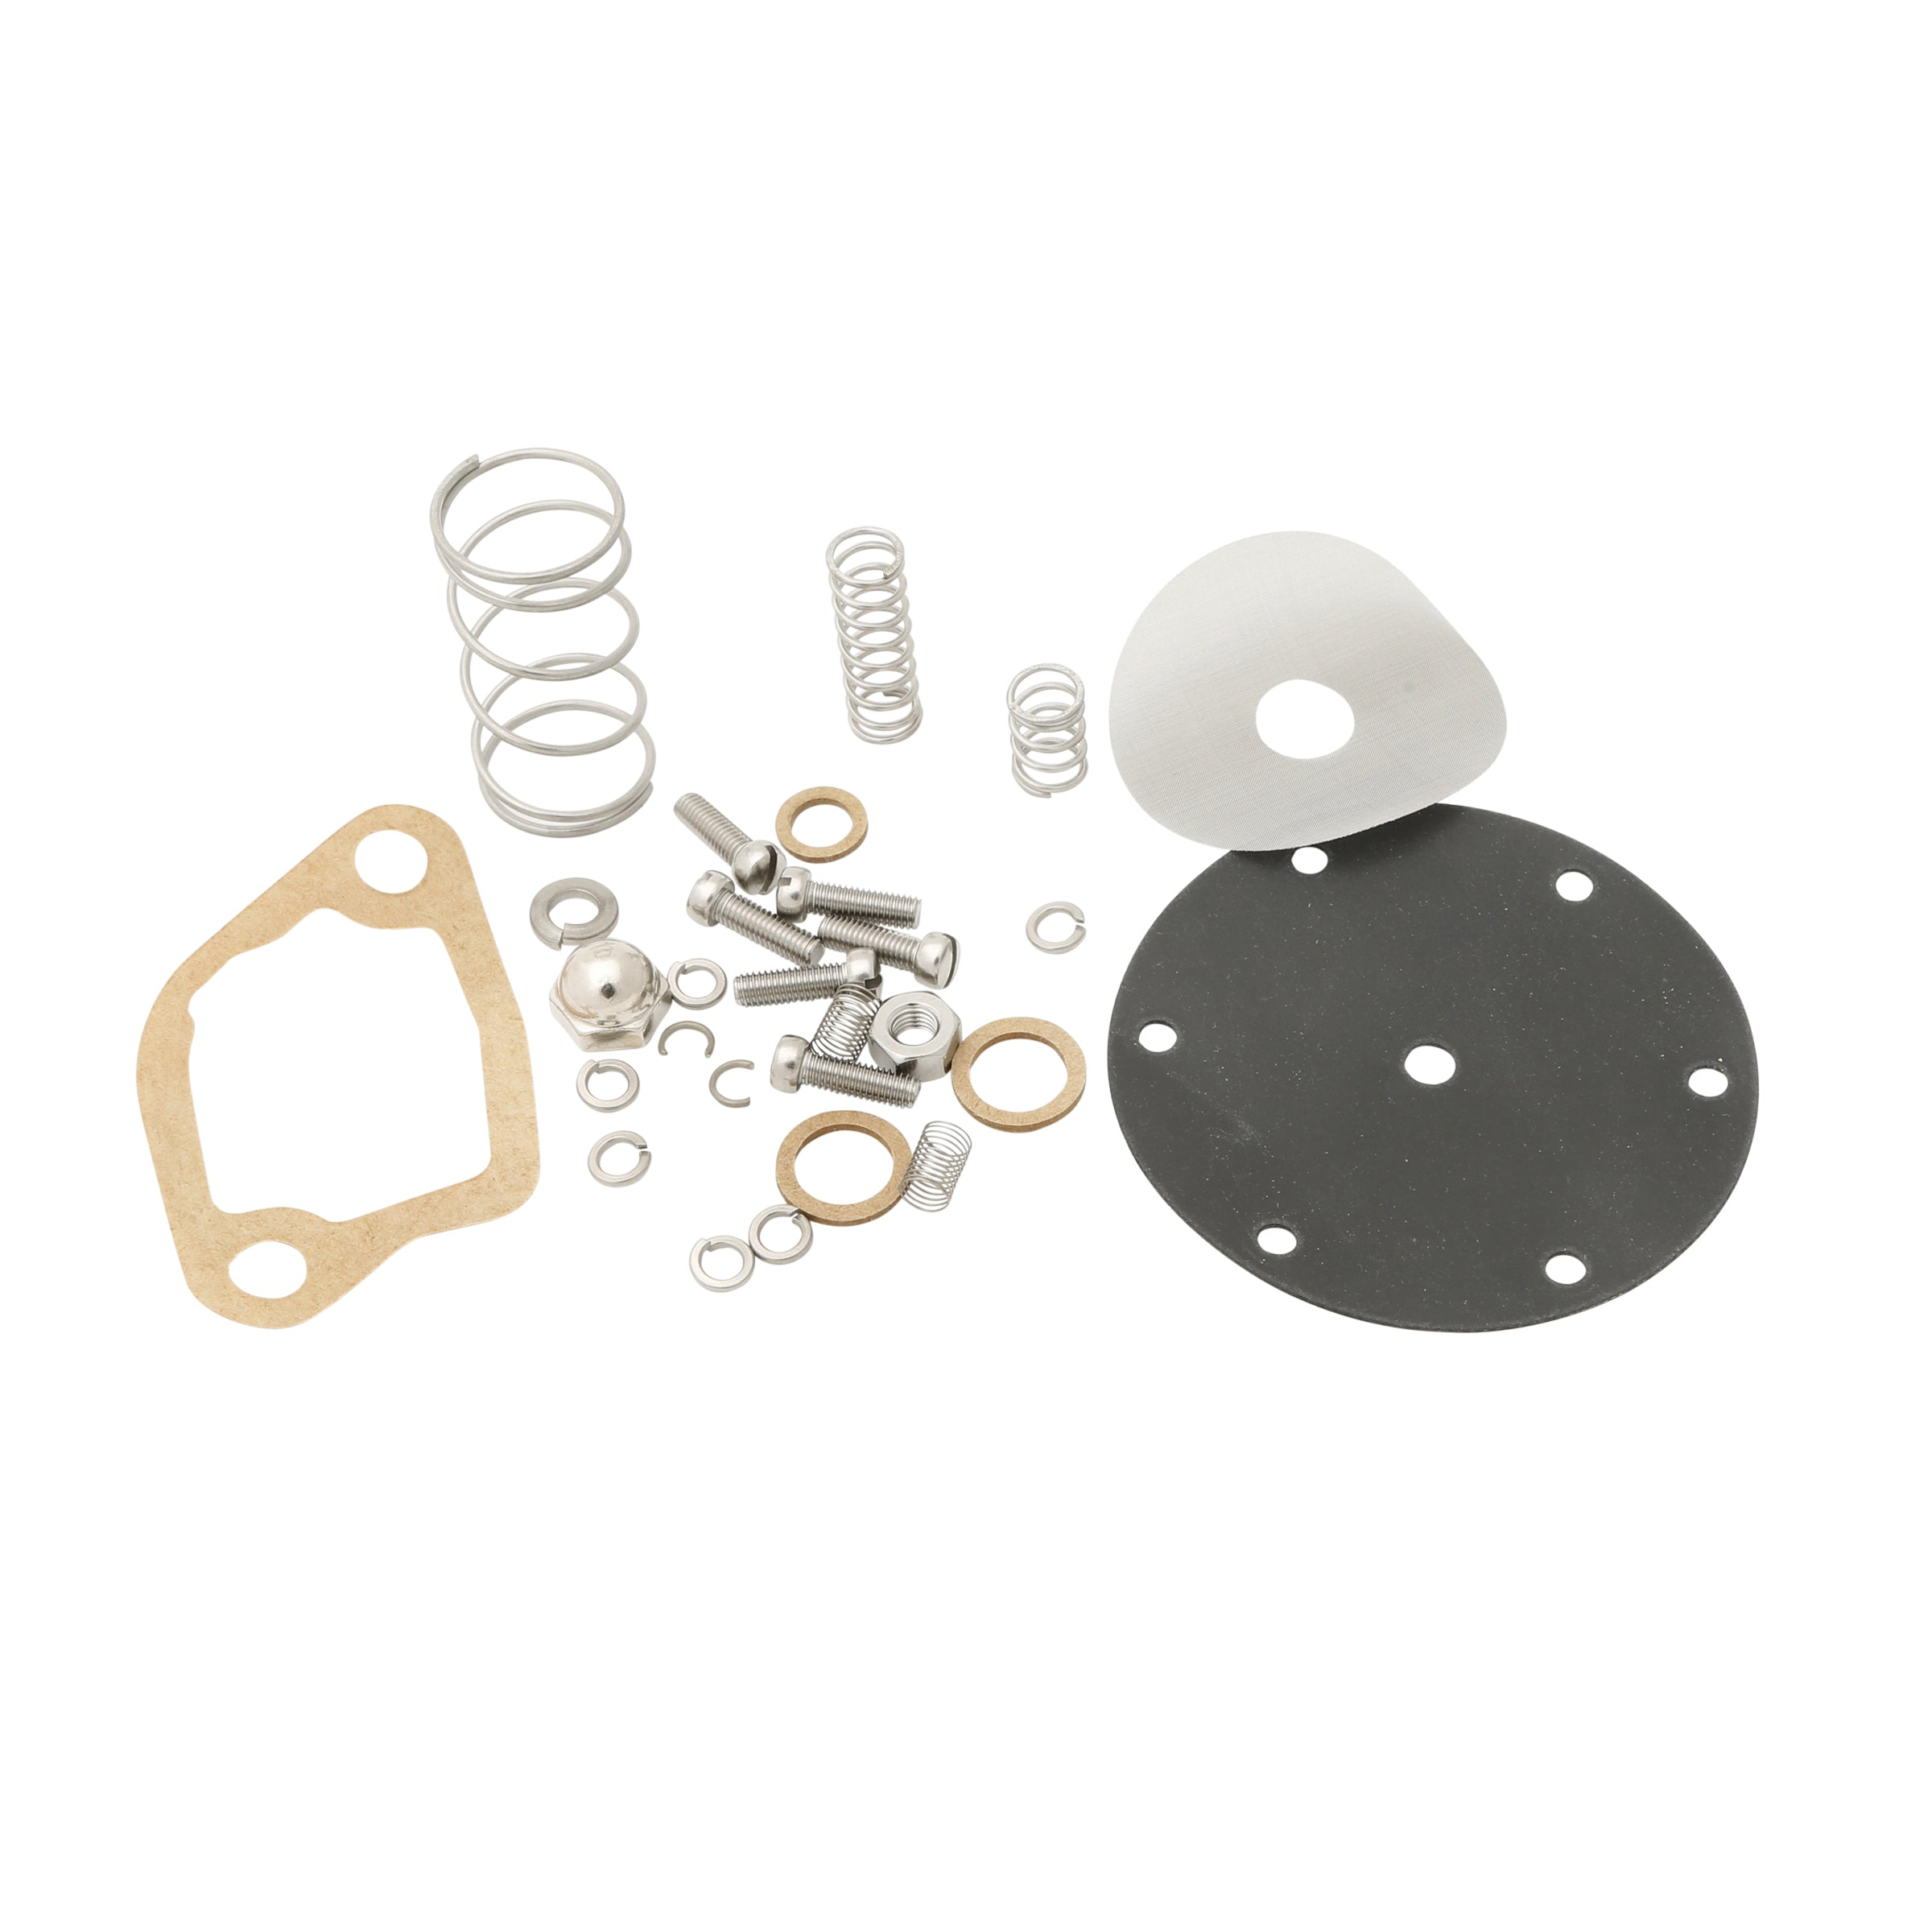 Fuel Pump Repair Kit • 1932-34